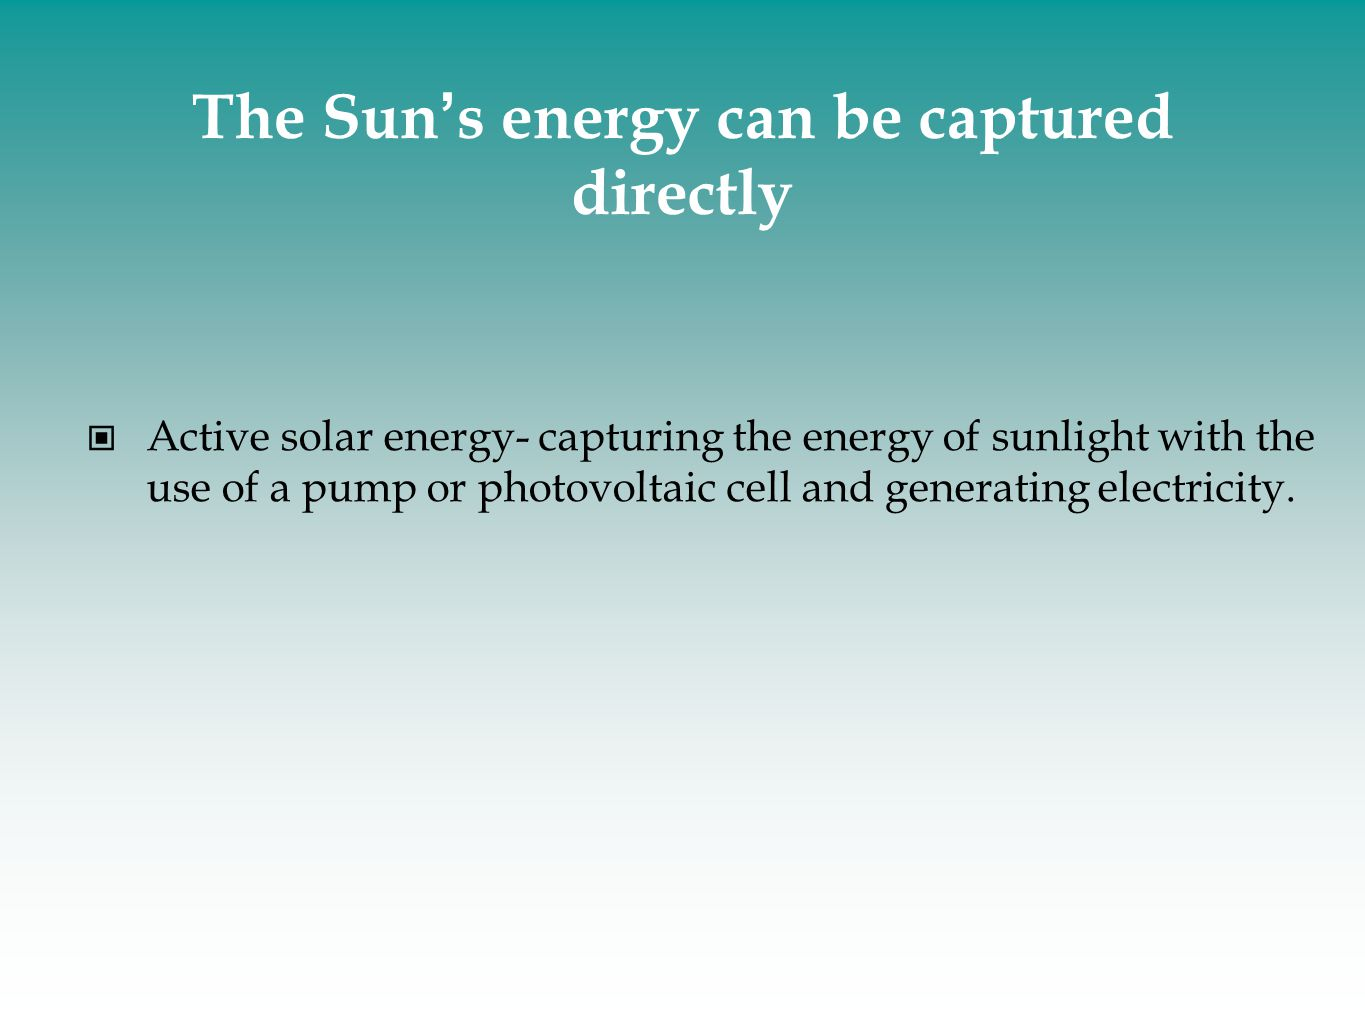 The Sun's energy can be captured directly